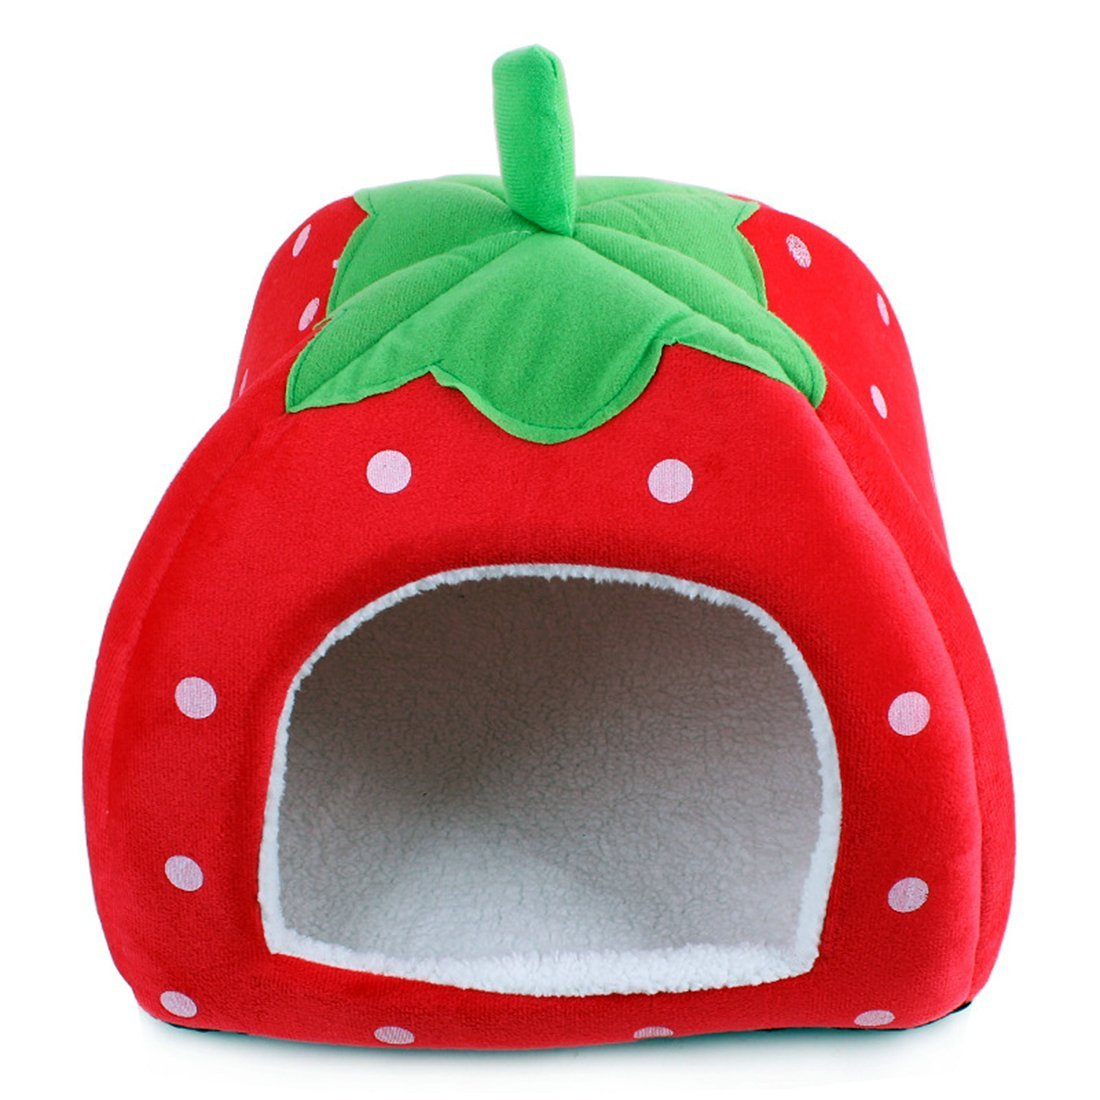 LanPet New Soft Strawberry Pet Dog Cat Rabbit Bed House Doggy Removable Cushion Basket Puppy Home Lovely Pet Cage S21